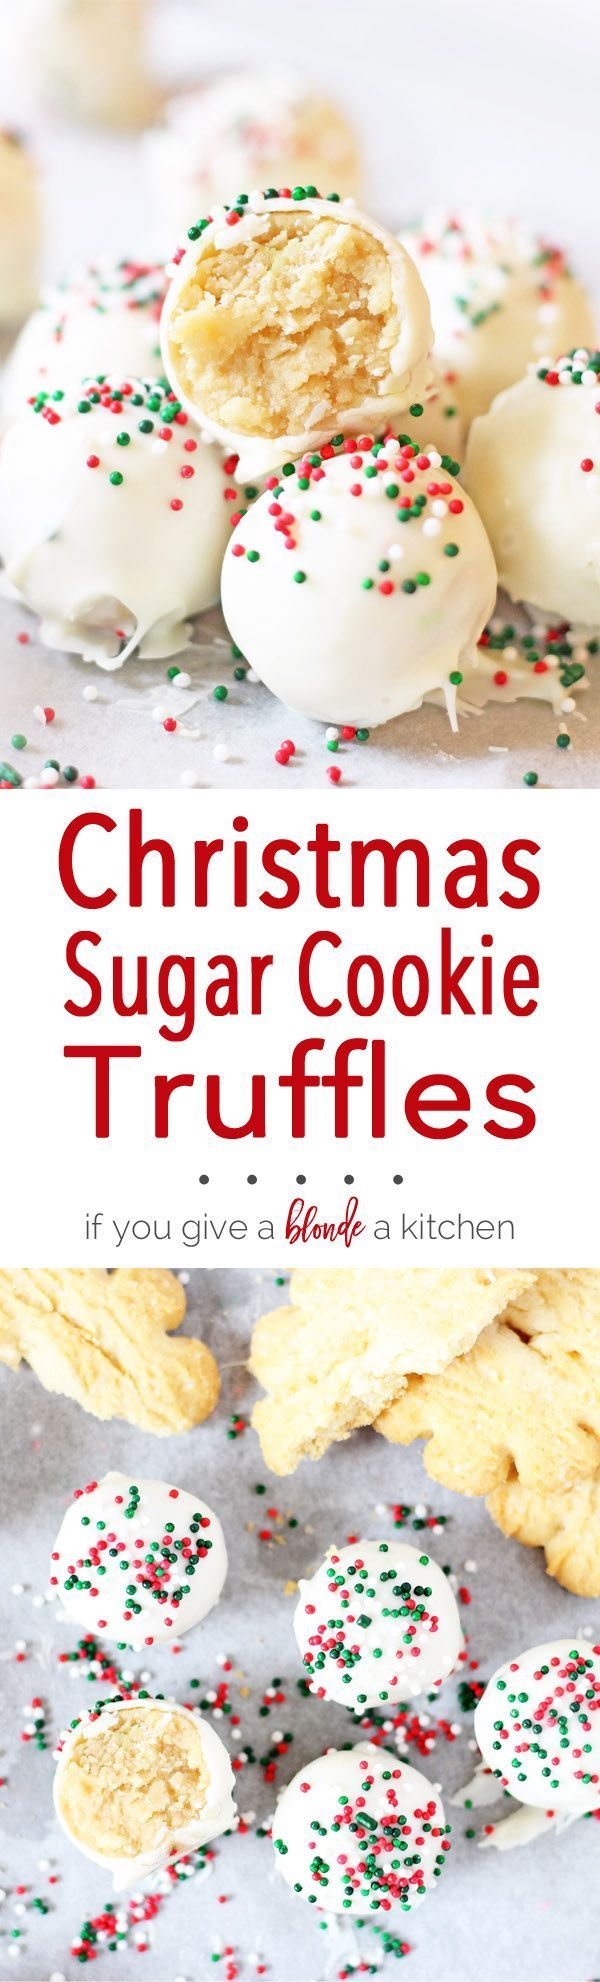 Sugar cookie truffles are a must-try this Christmas. It's a no-bake recipe that uses sugar cookies, cream cheese, white chocolate and sprinkles! | http://www.ifyougiveablondeakitchen.com